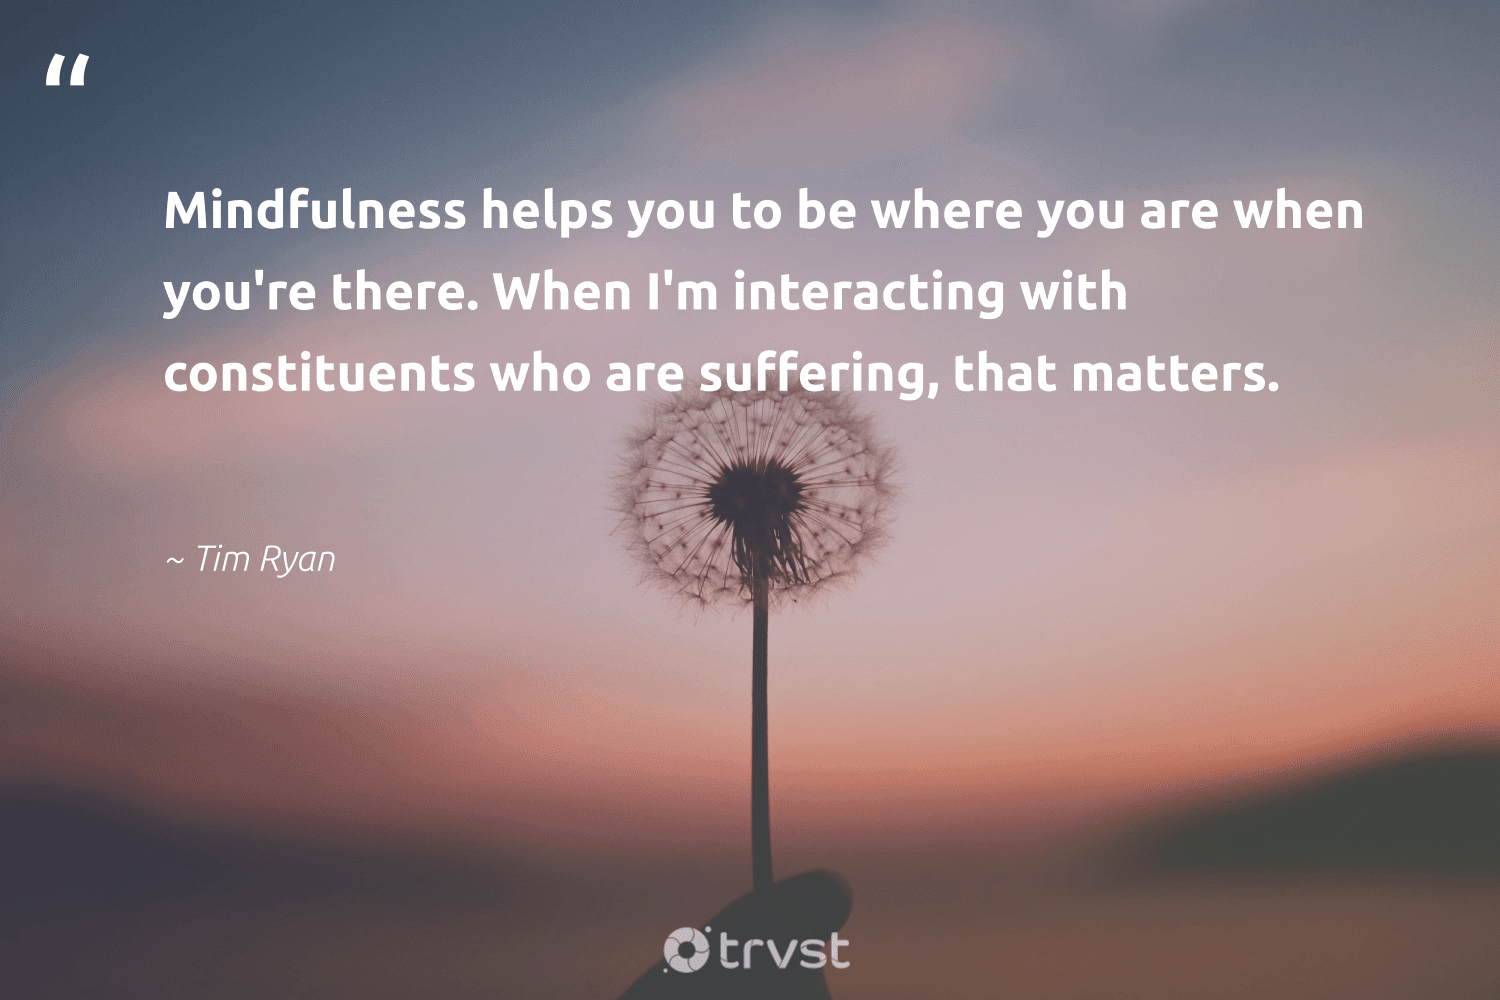 """""""Mindfulness helps you to be where you are when you're there. When I'm interacting with constituents who are suffering, that matters.""""  - Tim Ryan #trvst #quotes #mindfulness #meditate #positivity #changemakers #dotherightthing #motivation #wellness #begreat #gogreen #mindful"""